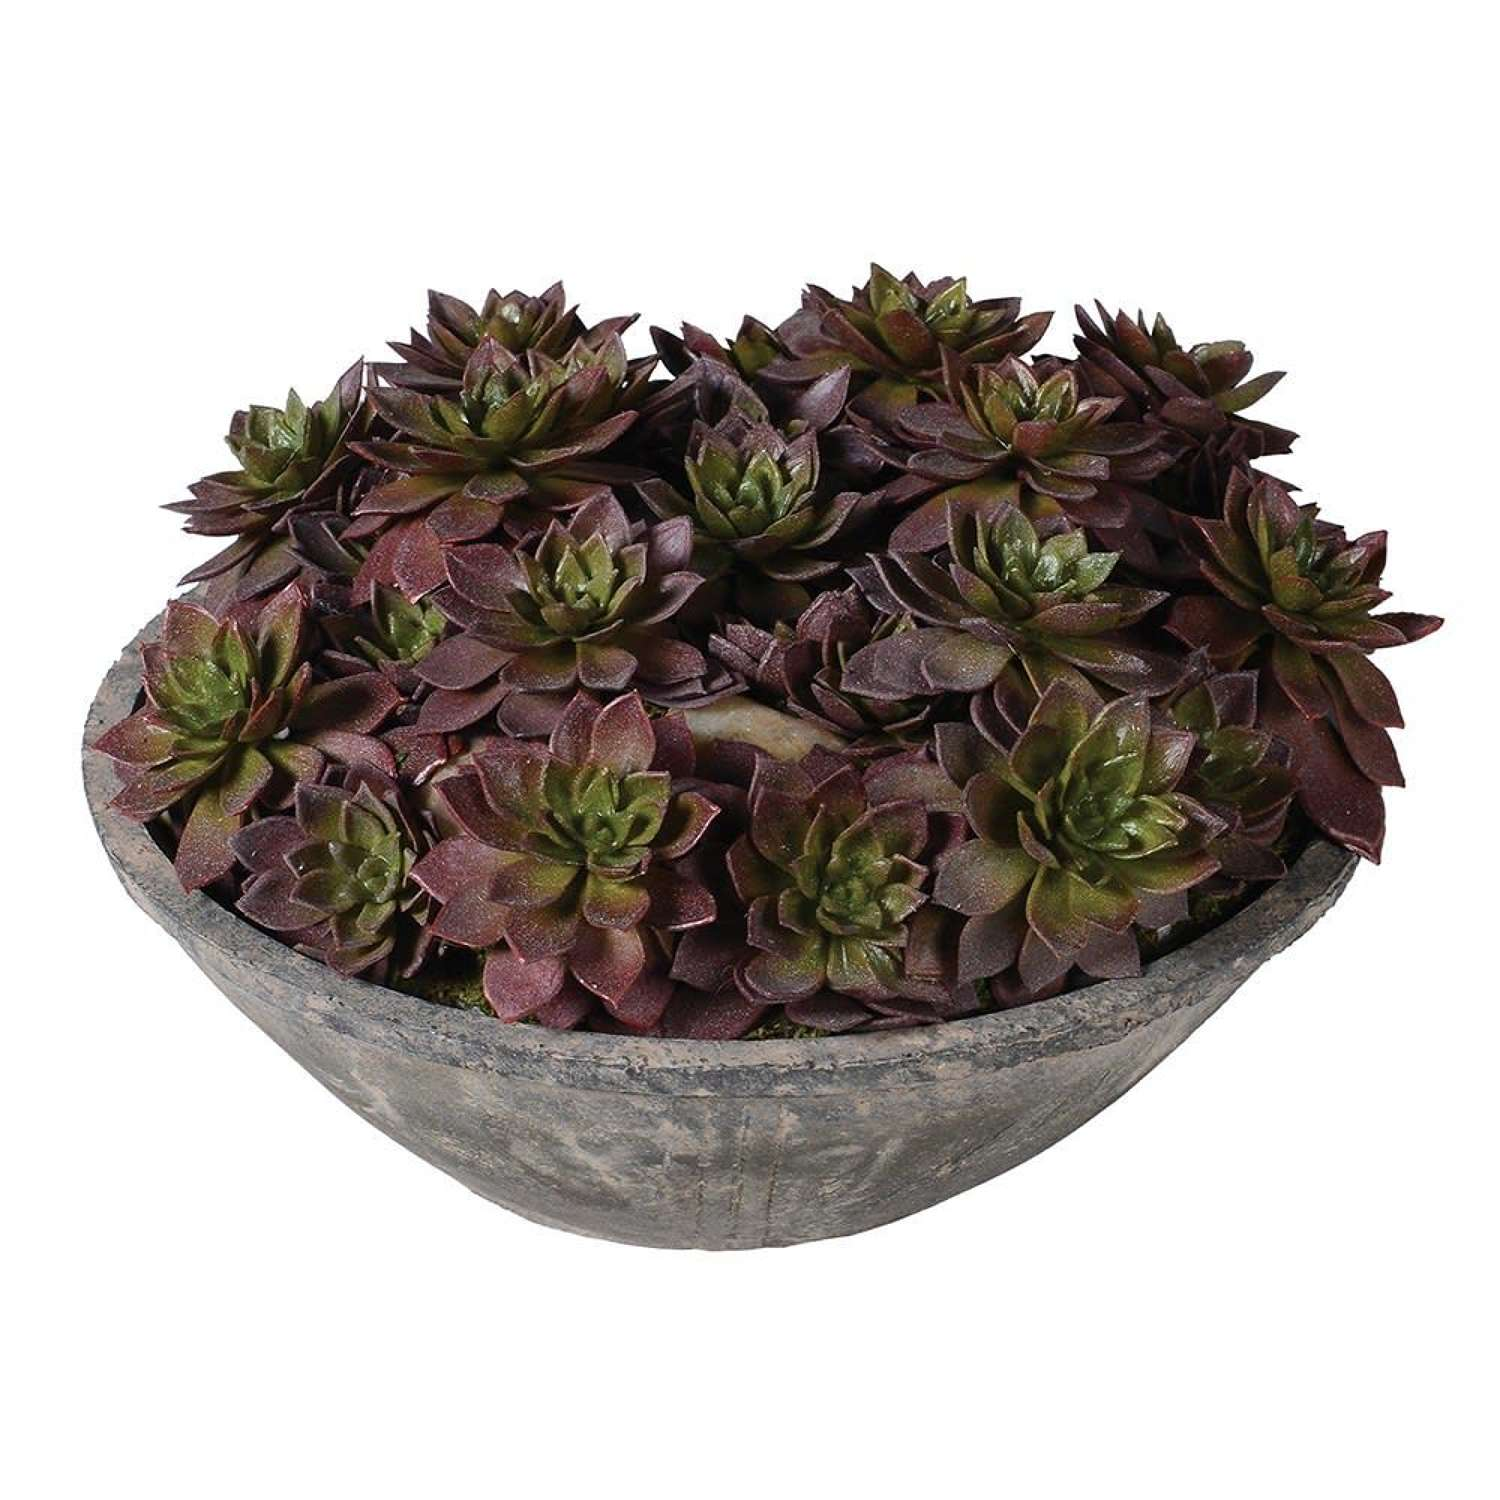 Grey Cement Bowl with Brown and Green Echeveria Plants